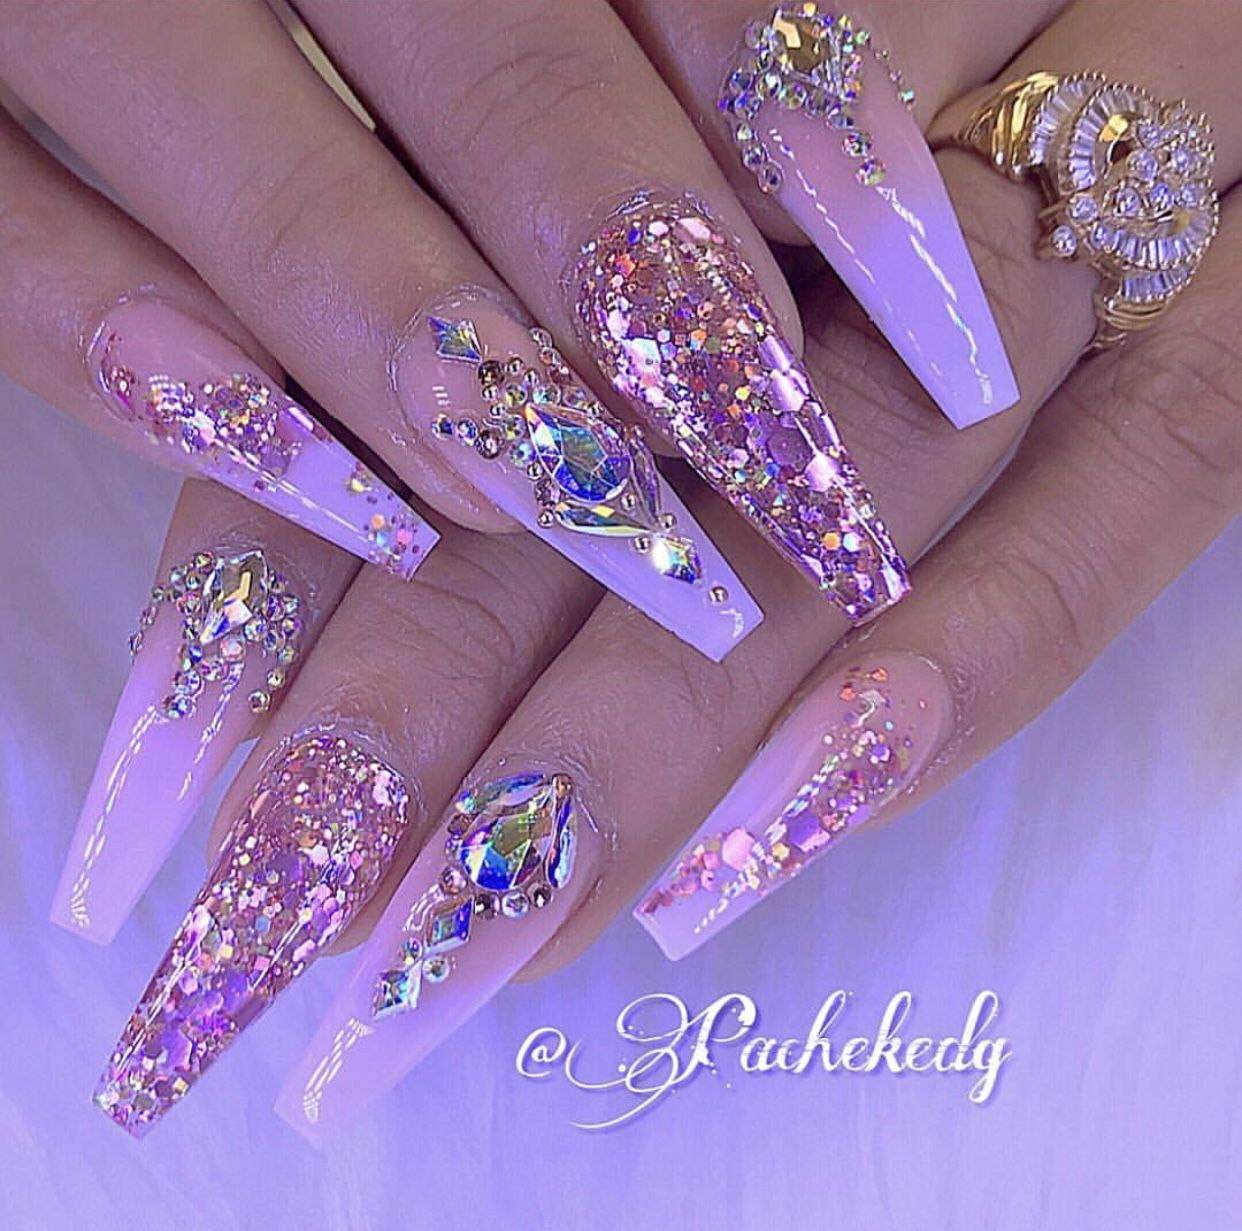 Pink Ombré Glitter Coffin Nails With Bling